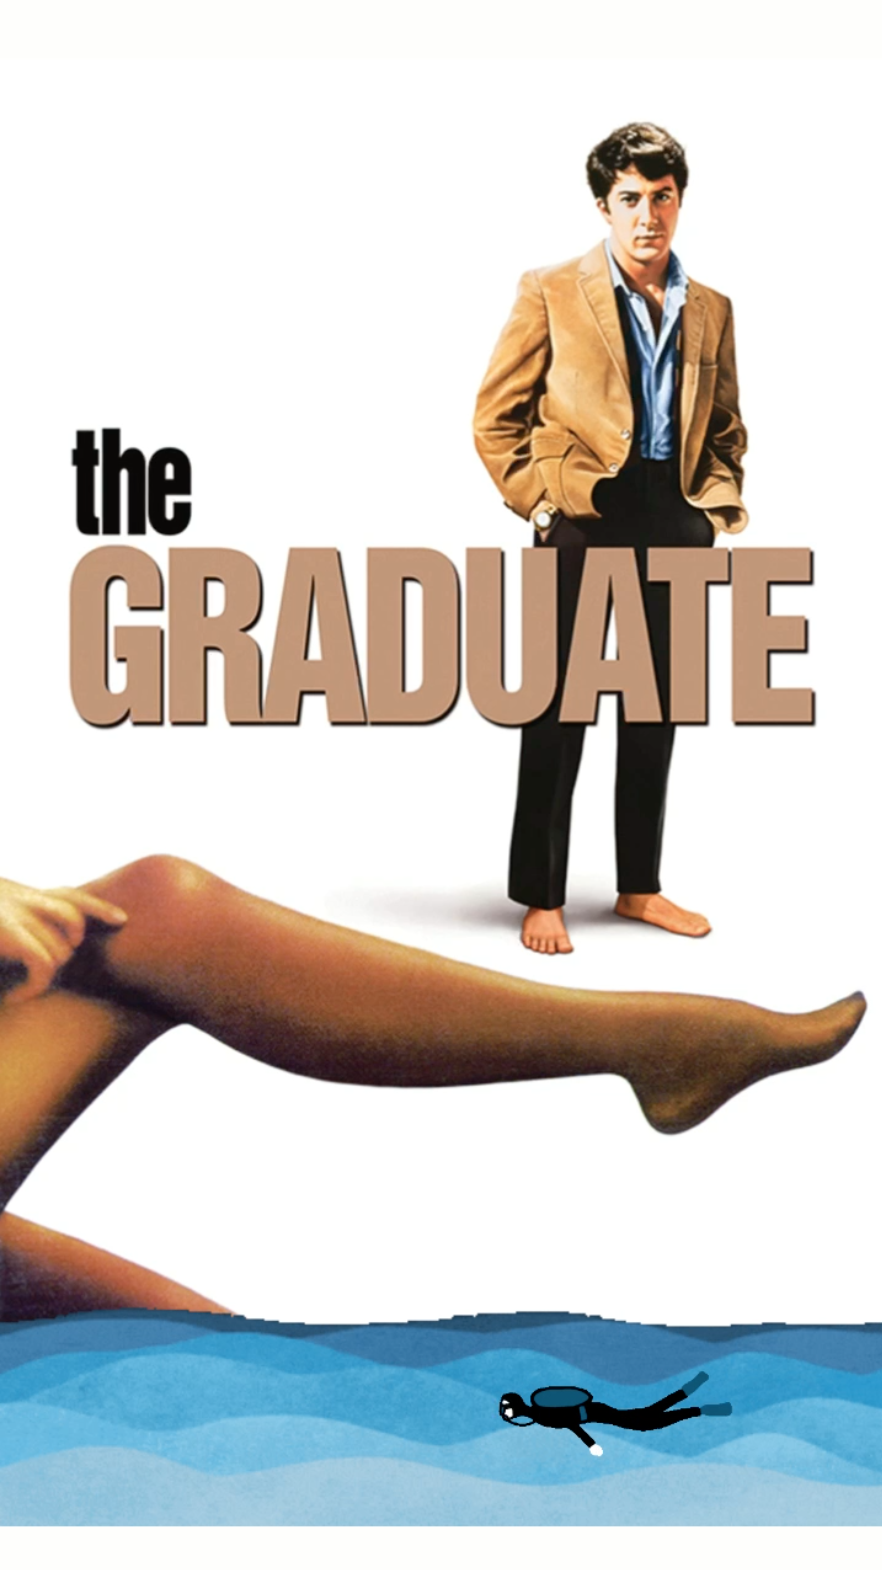 The Graduate - Ray Taylor Show